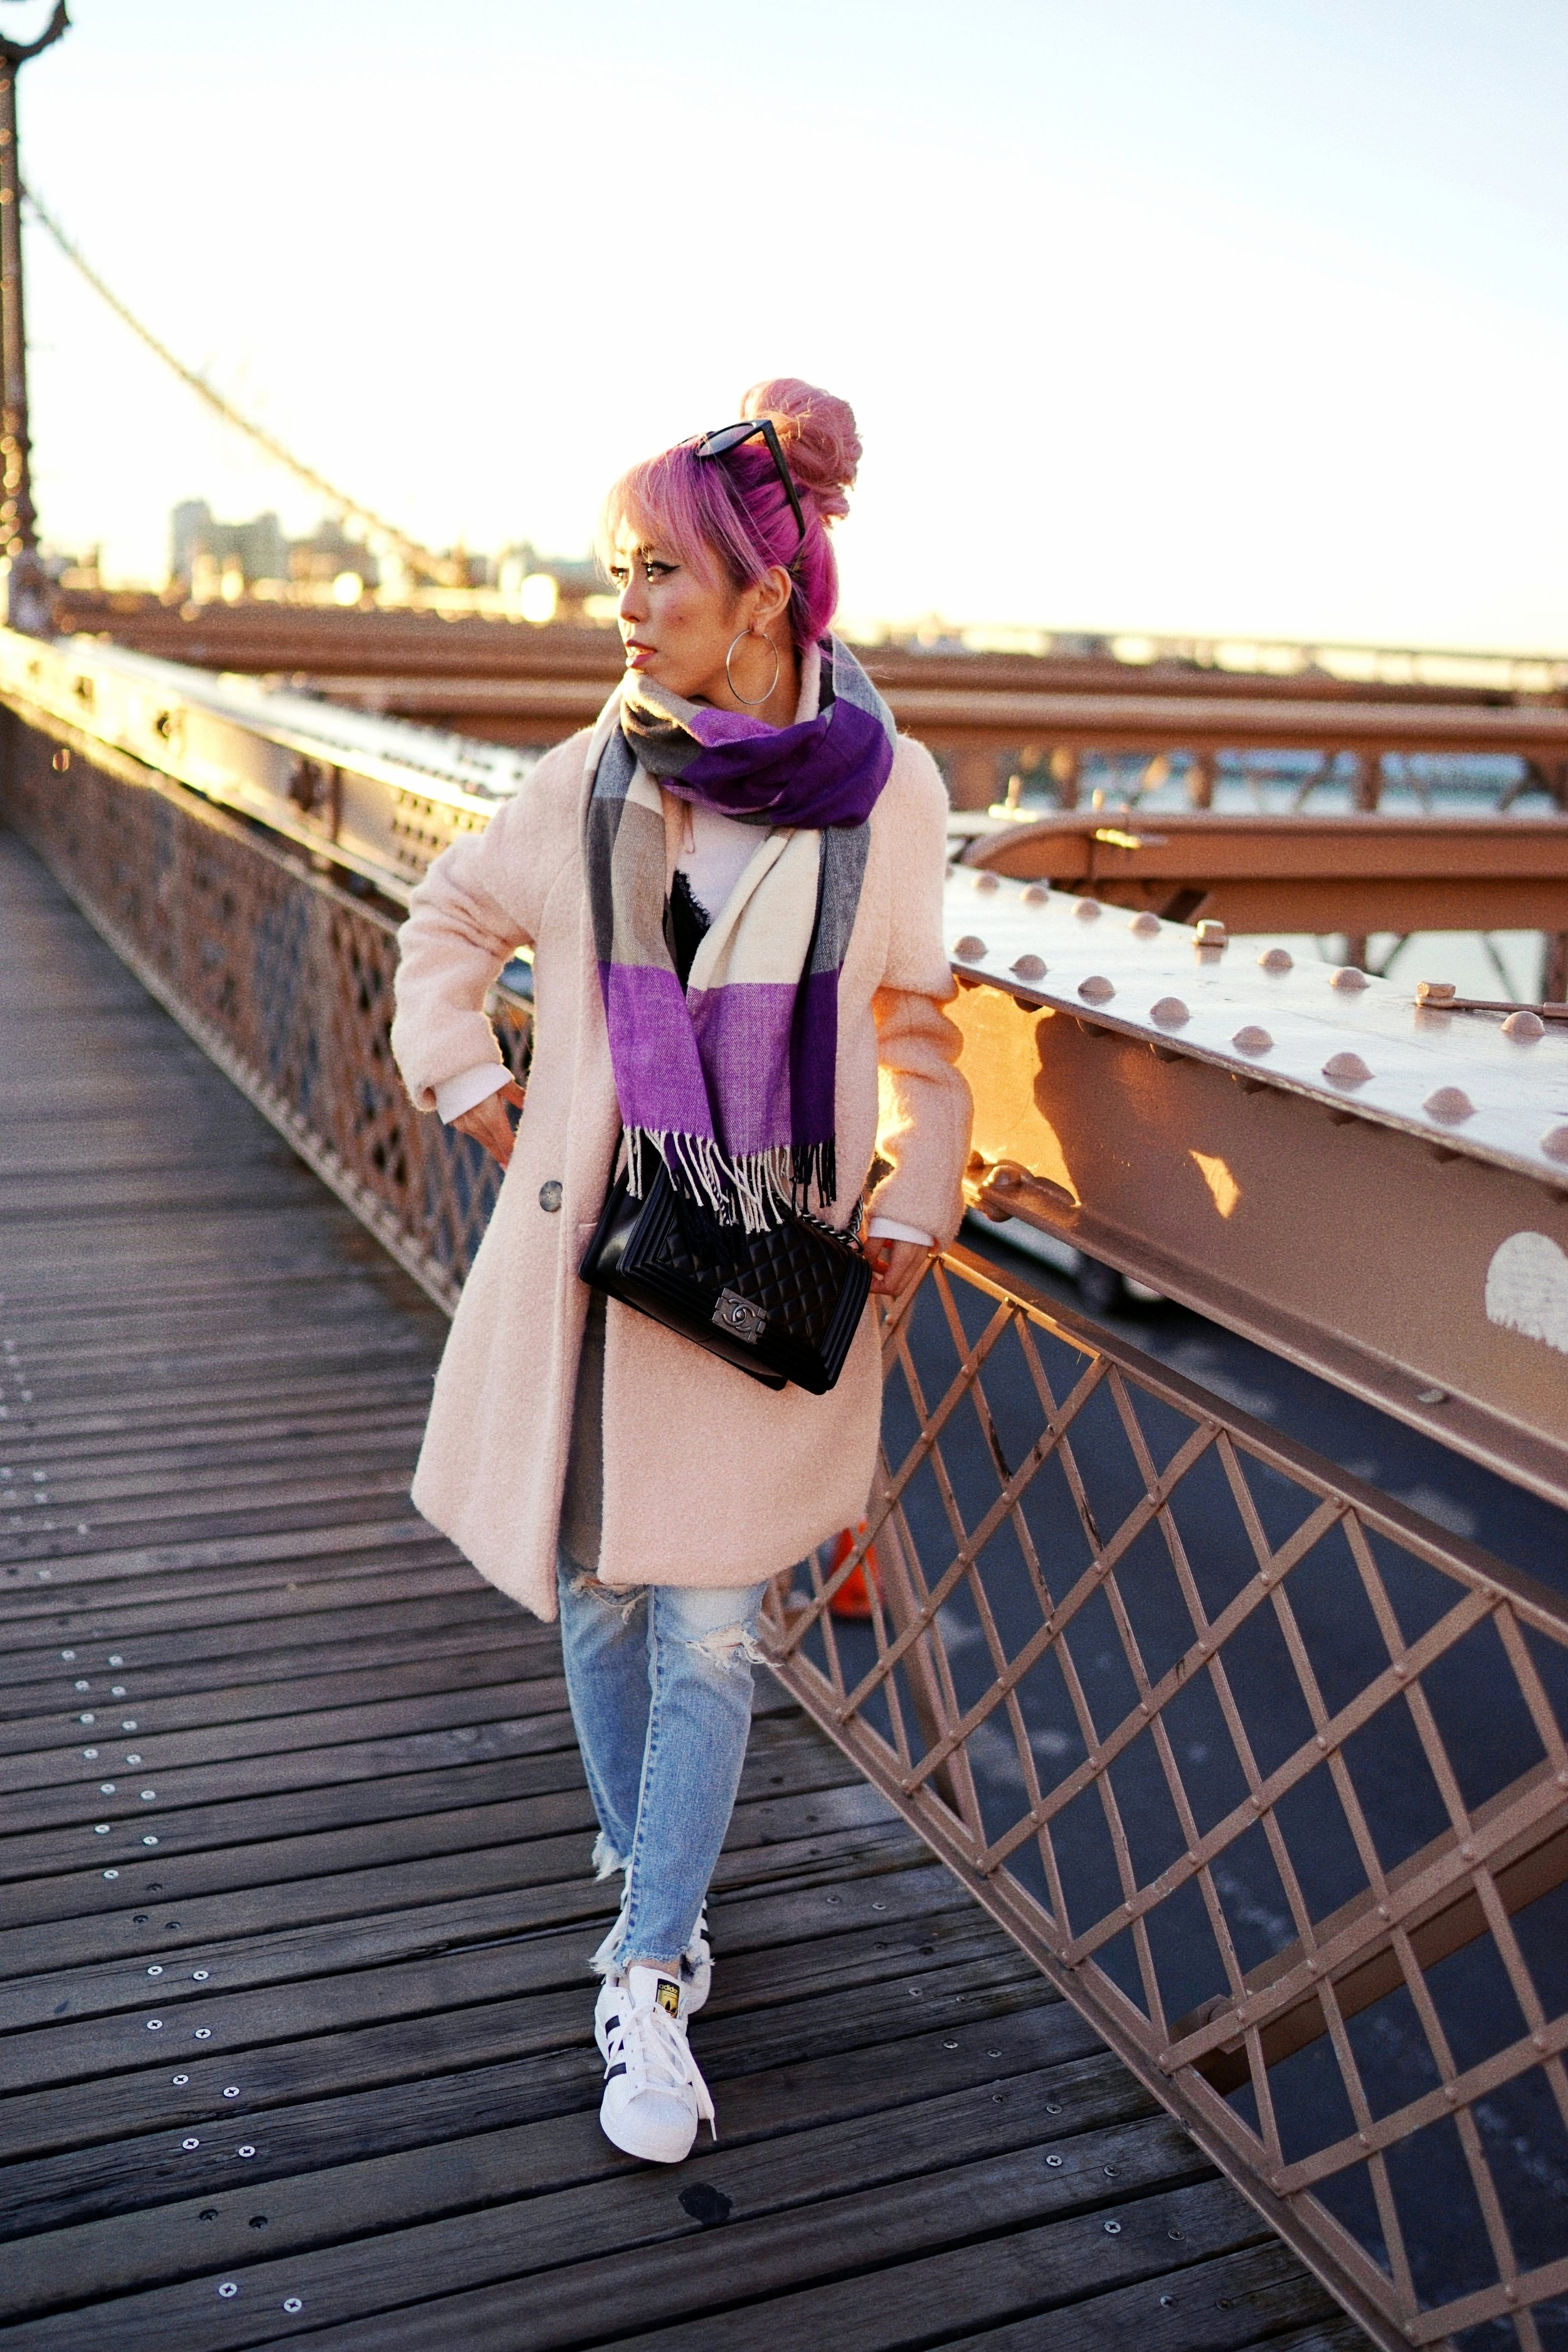 GAP Scarf-Zara pink coat-MOUSSY- frayed hem jeans- CHANEL Lambskin Quilted Medium Boy Flap Black-Adidas Superstar Shoes-Urban Outfitters Sunglasses-Aika's Love Closet-Sealtle fashion style blogger from japan-pink hair-brooklyn bridge-new york-city 10